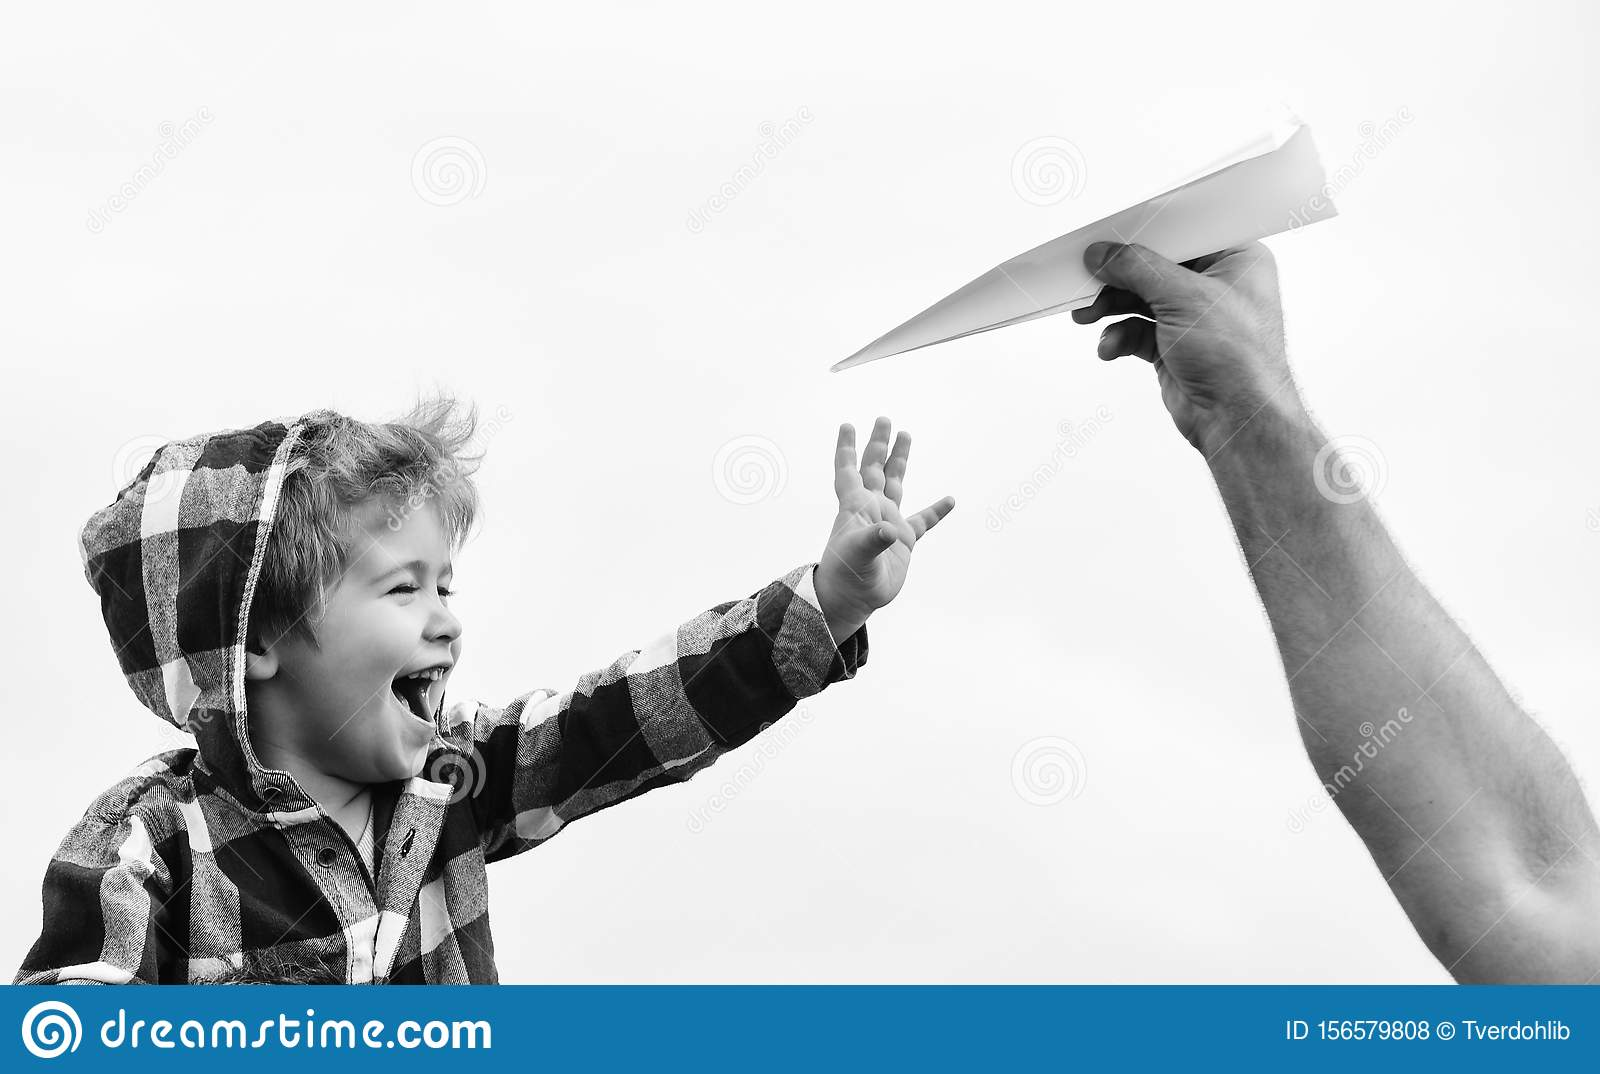 Child son playing with paper airplane. Carefree. Freedom to Dream - Joyful Boy Playing With Paper Airplane. Dream of